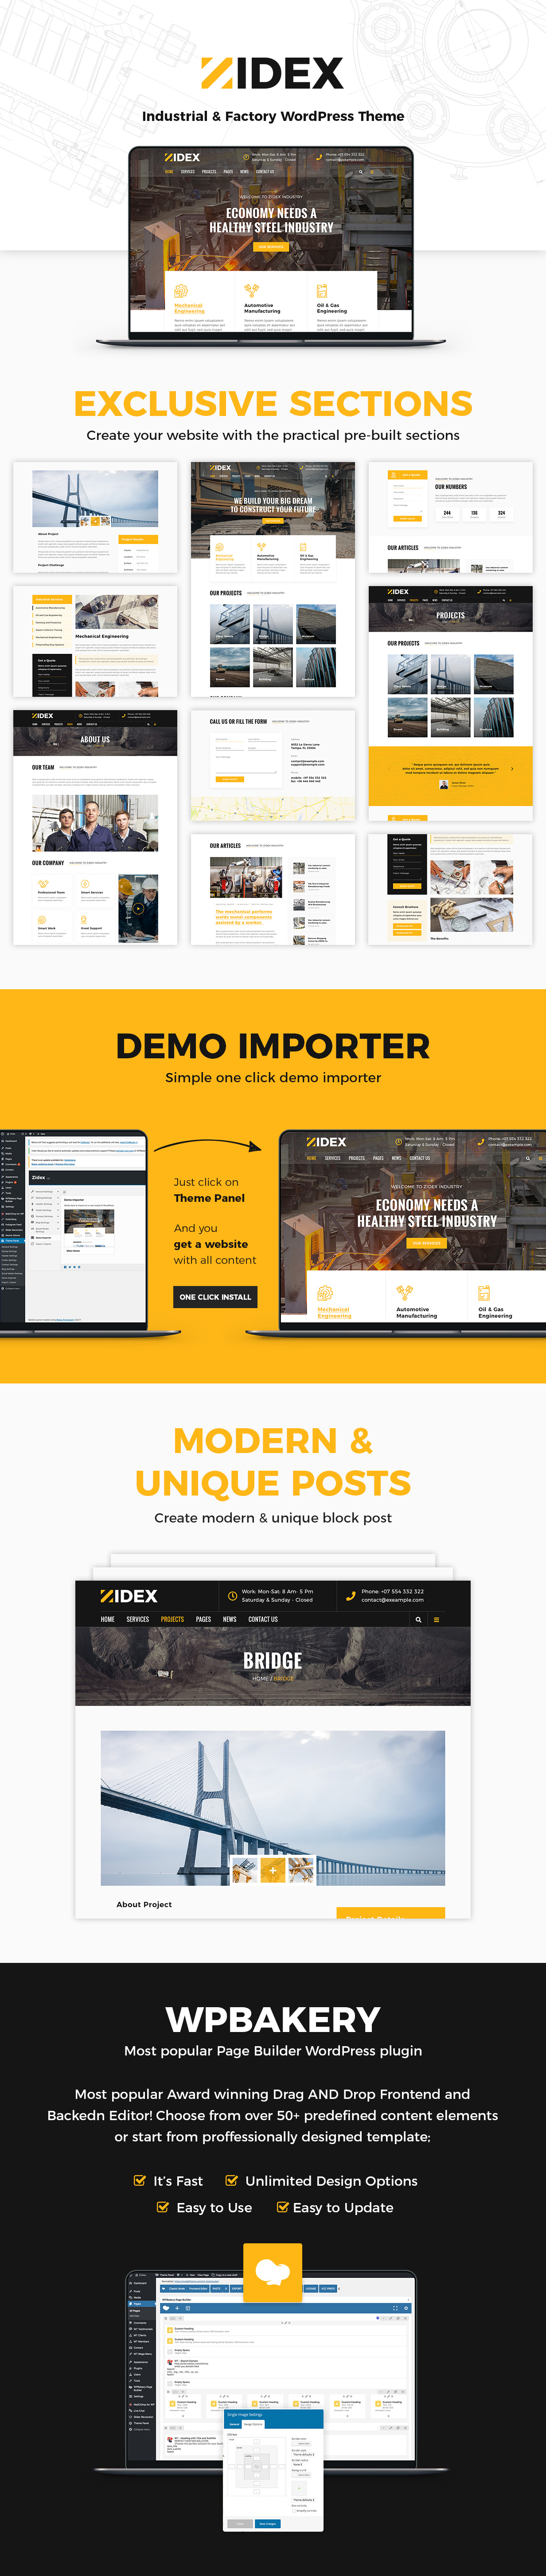 Zidex - Industrial & Factory WordPress Theme - 1